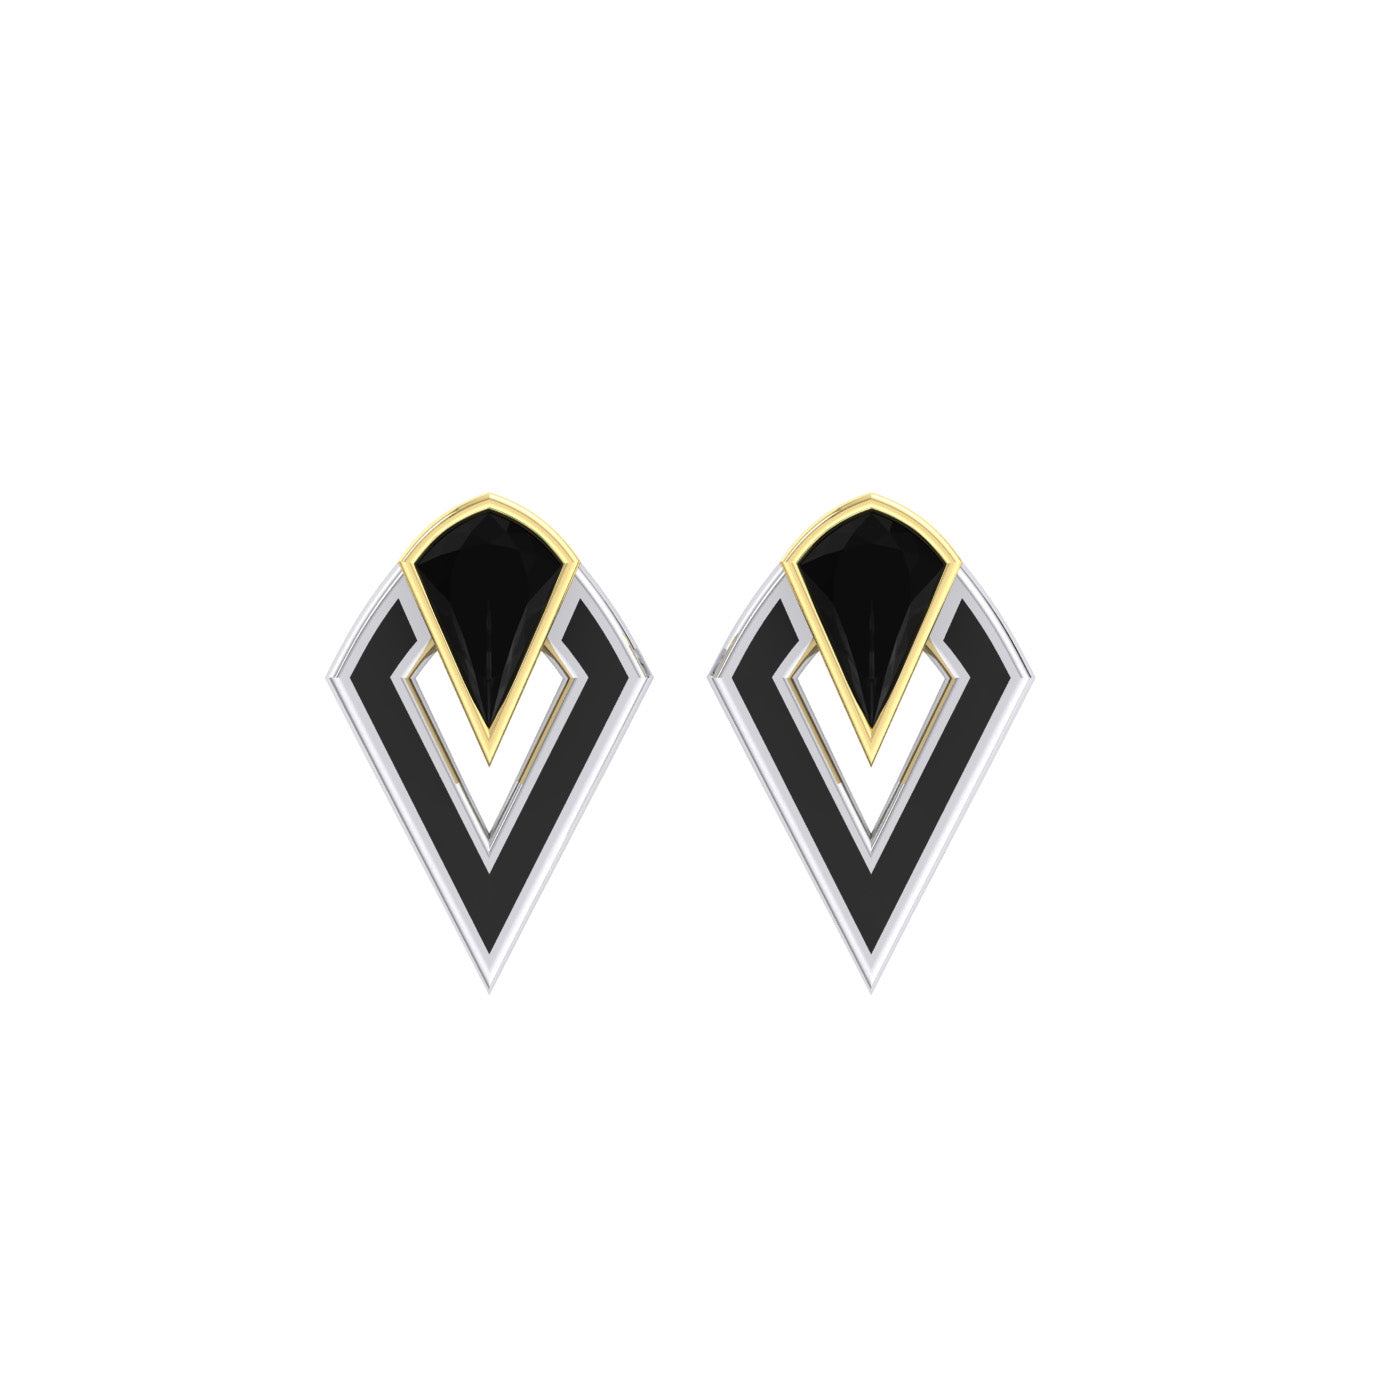 Onyx and gold stud earrings